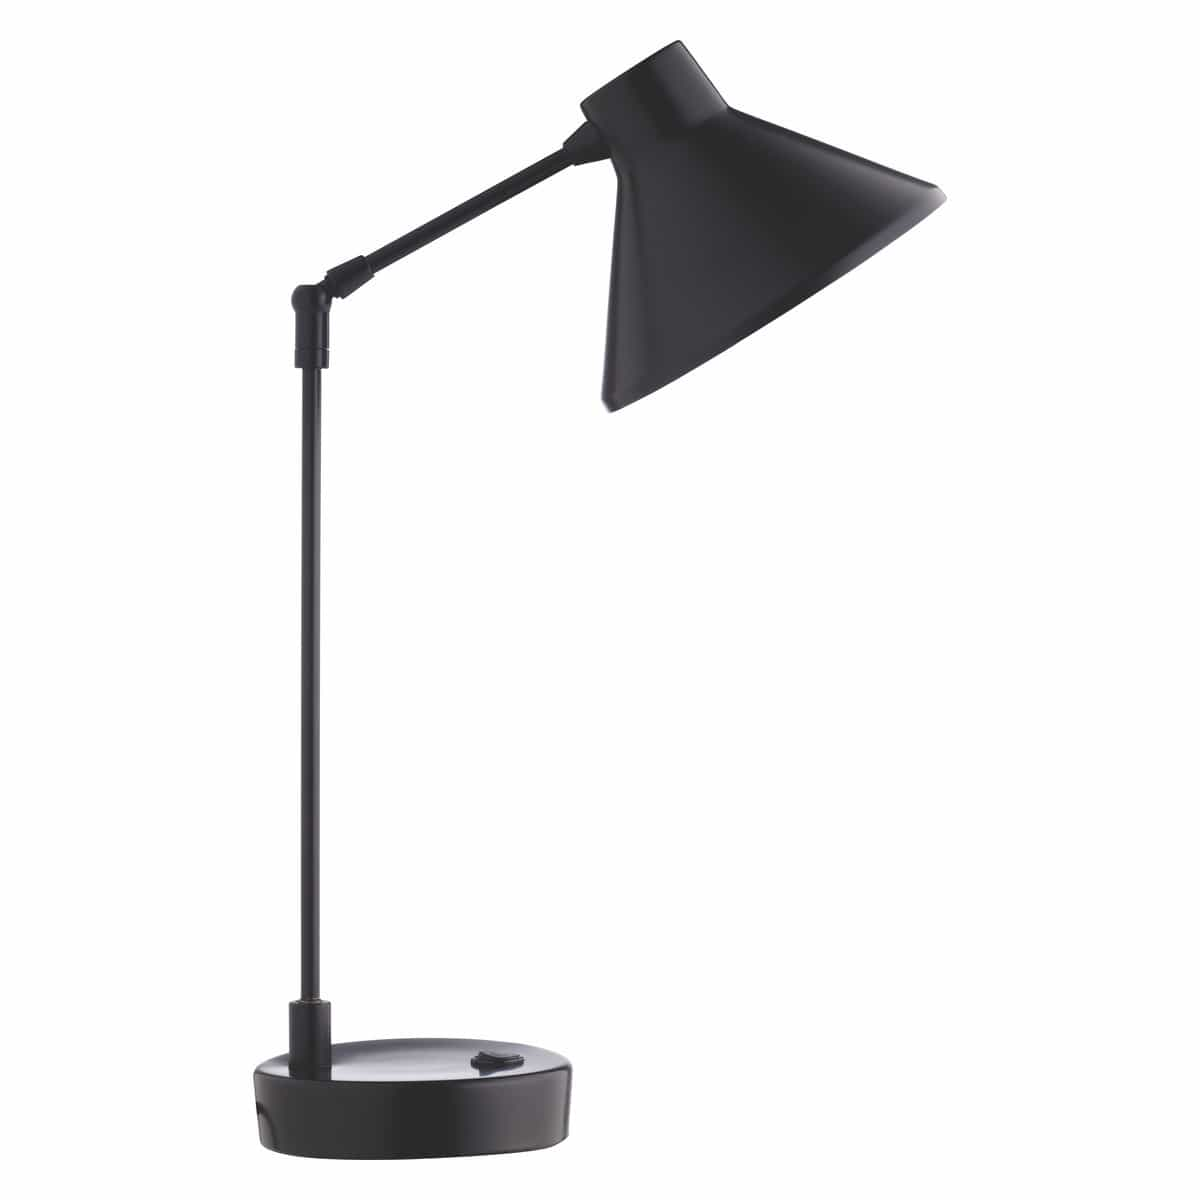 Bobby Desk Lamp